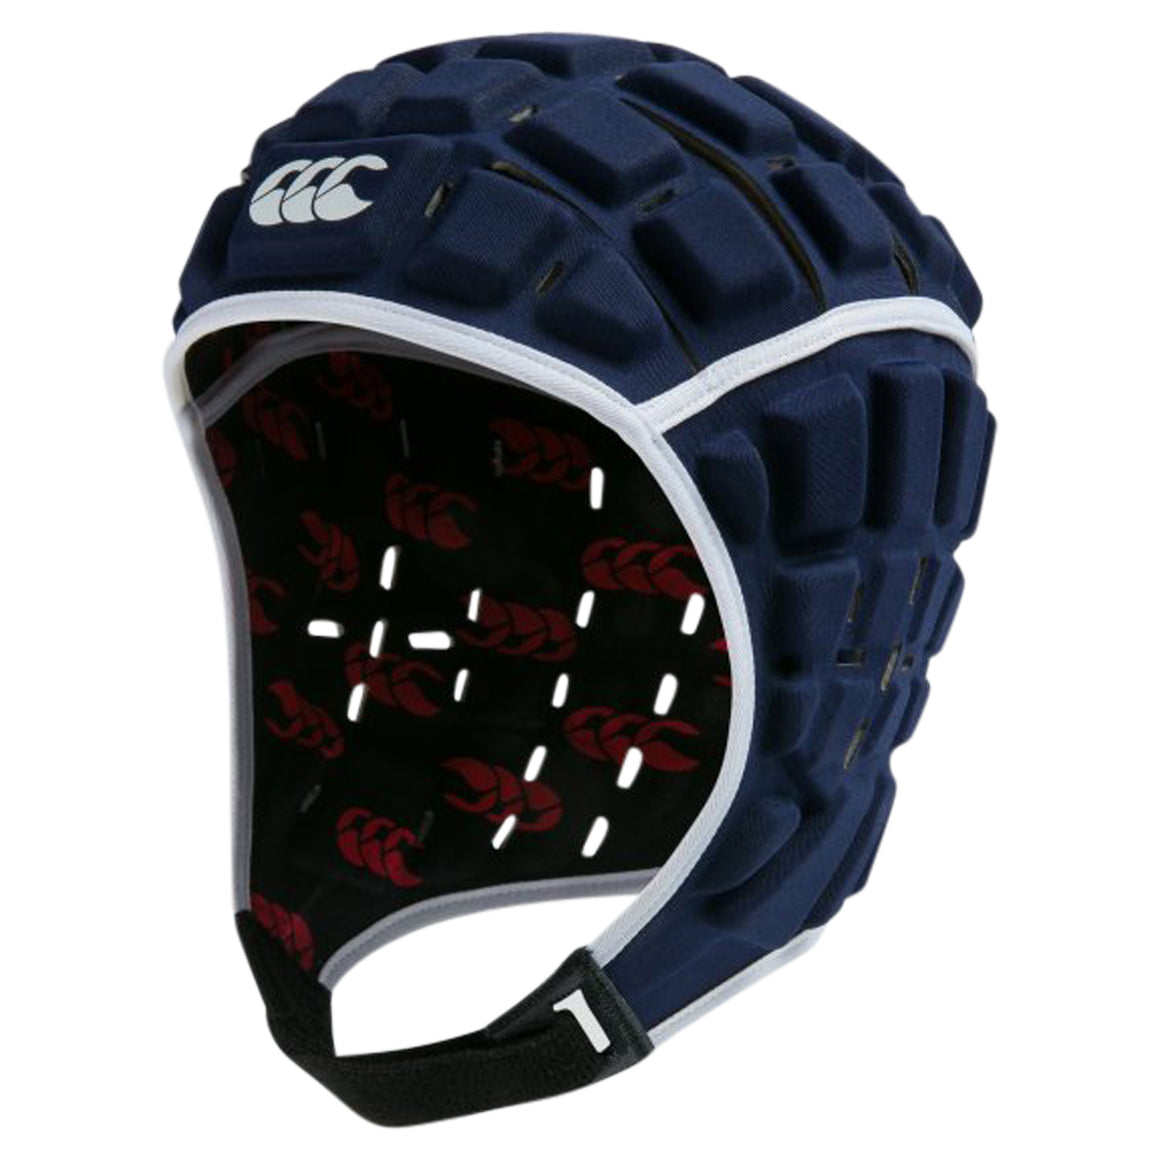 Reinforcer Headguard for Men in Navy